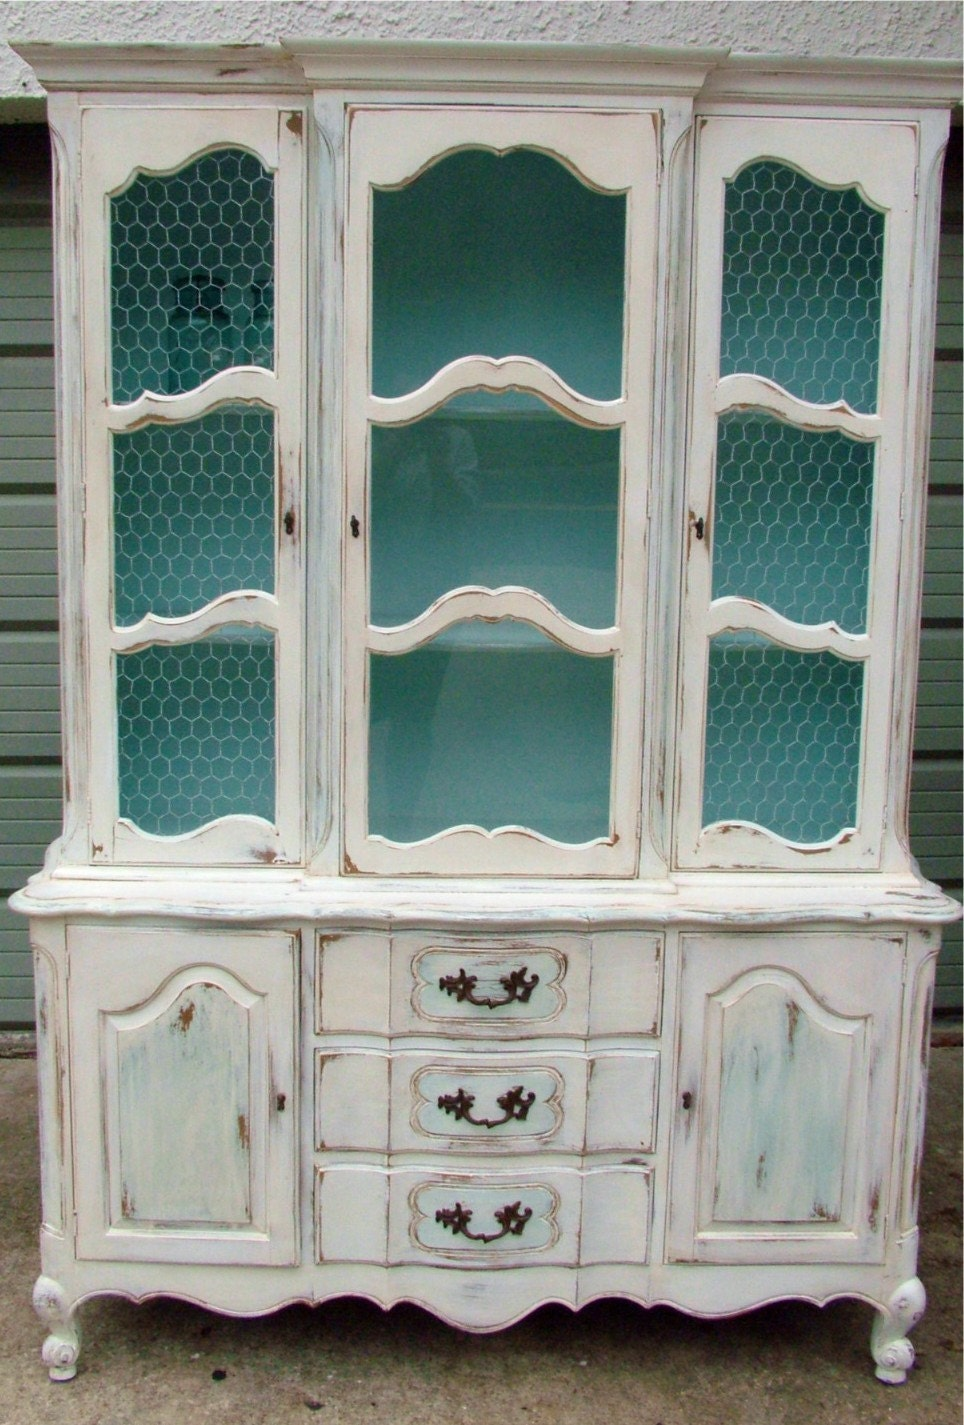 moving sale shabby chic vintage french country hutch. Black Bedroom Furniture Sets. Home Design Ideas